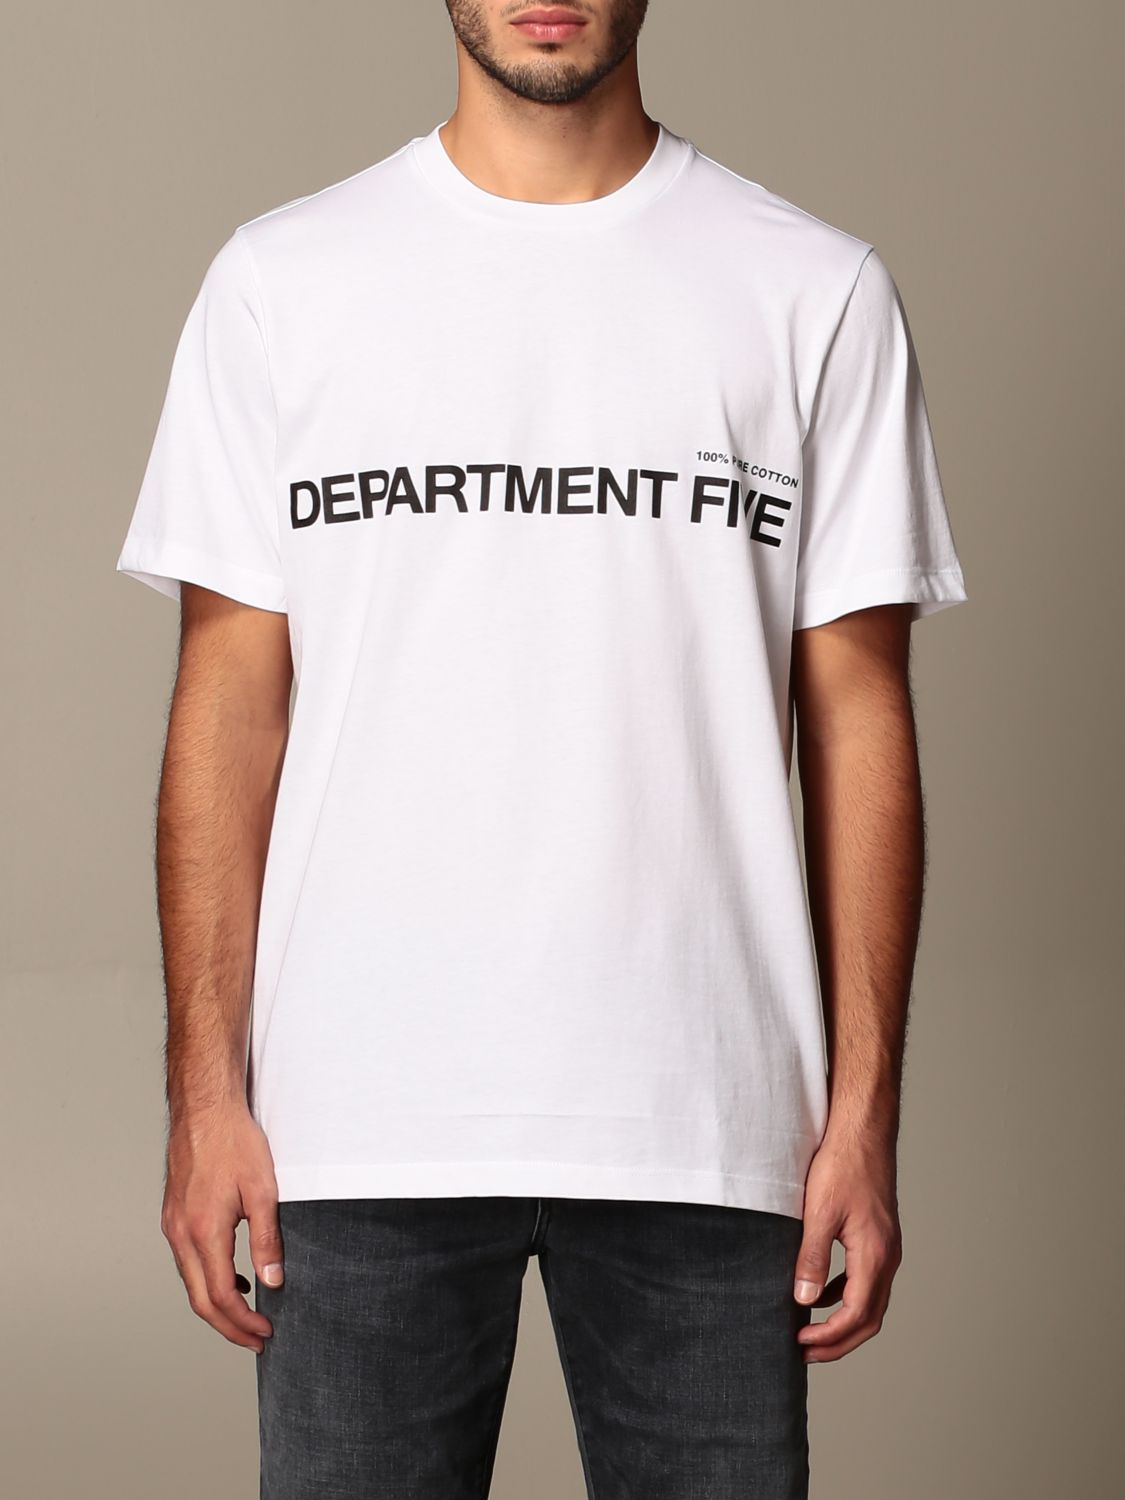 Camiseta Department 5: Camiseta hombre Department 5 blanco 1